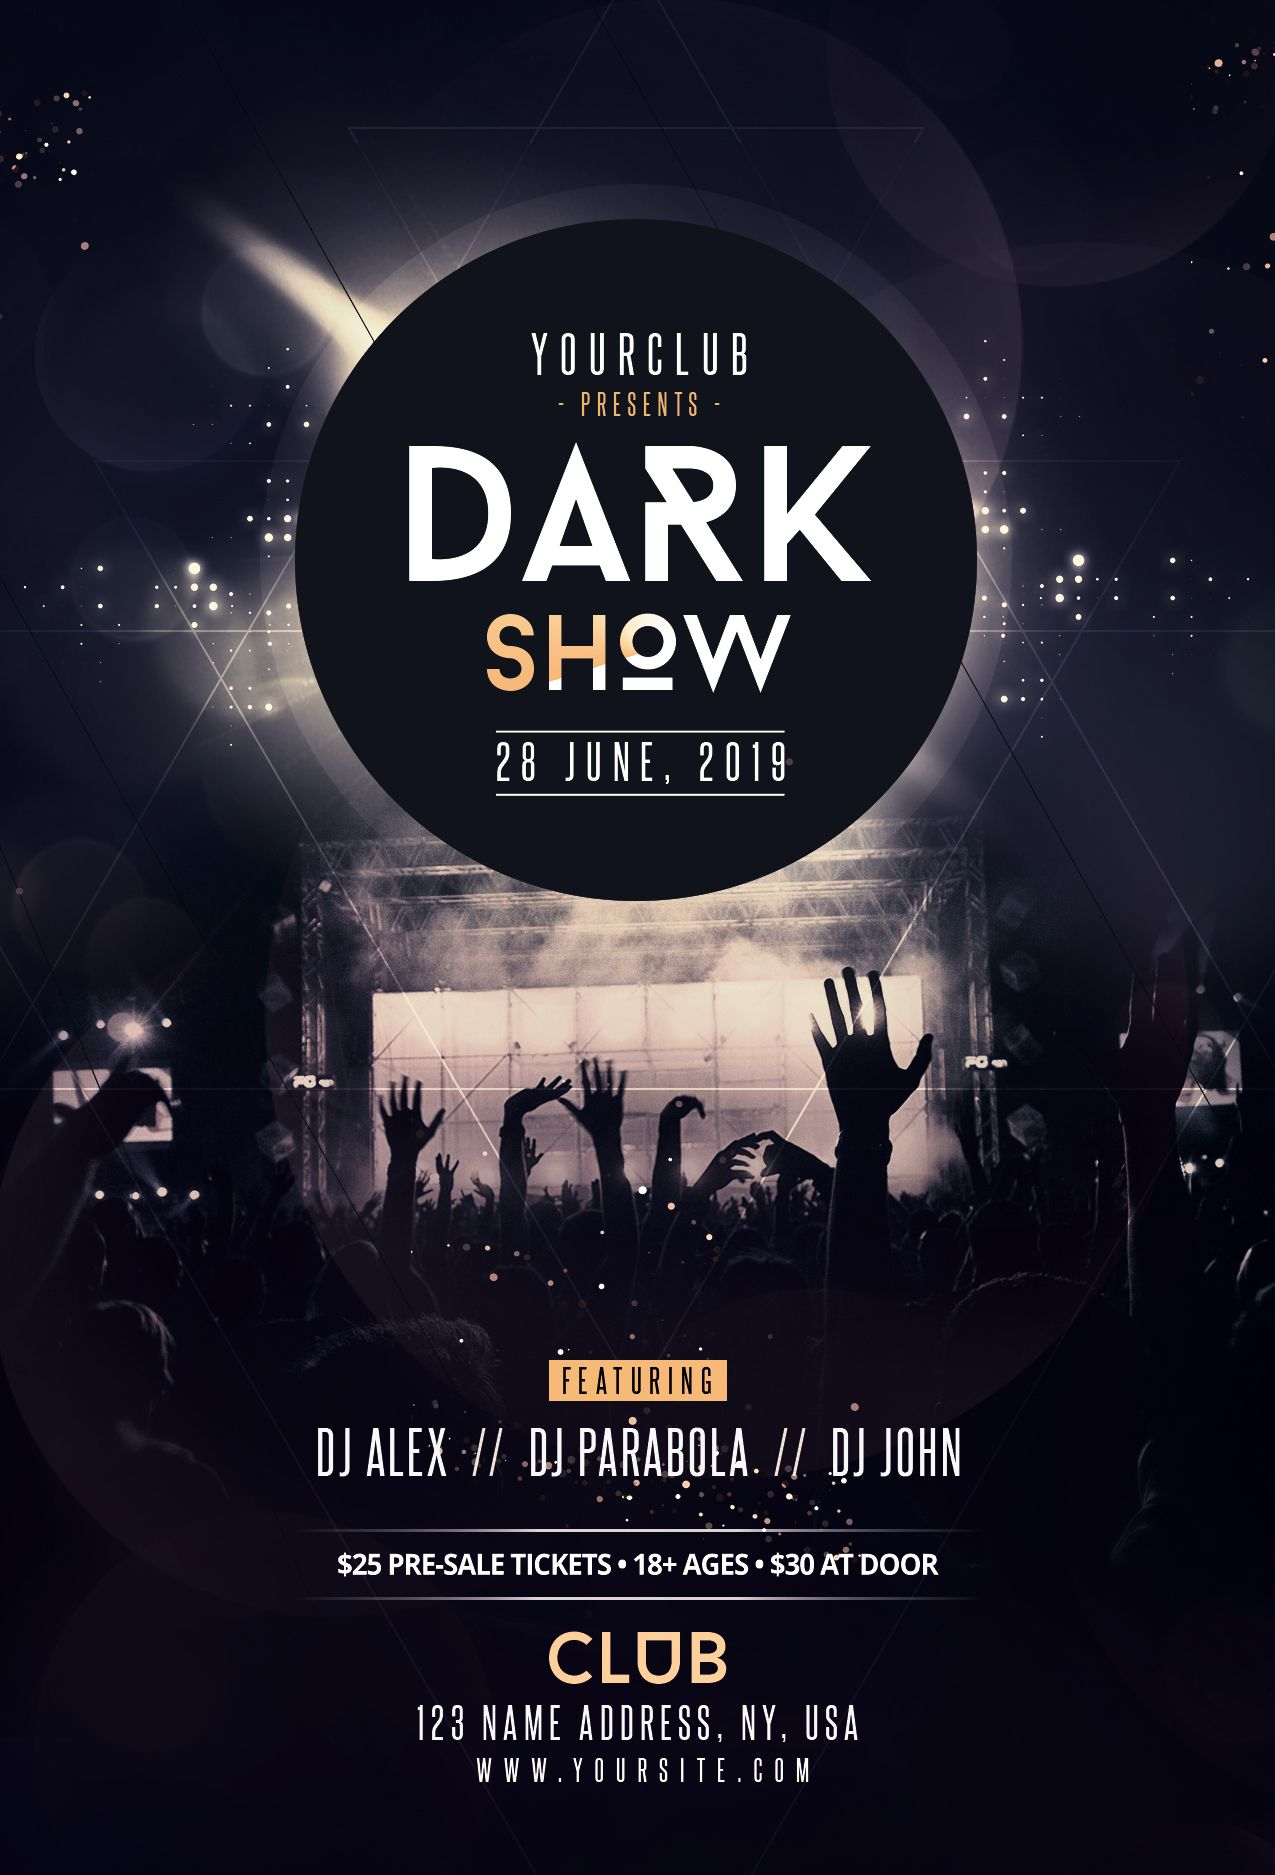 dark show free psd flyer template download design pinterest